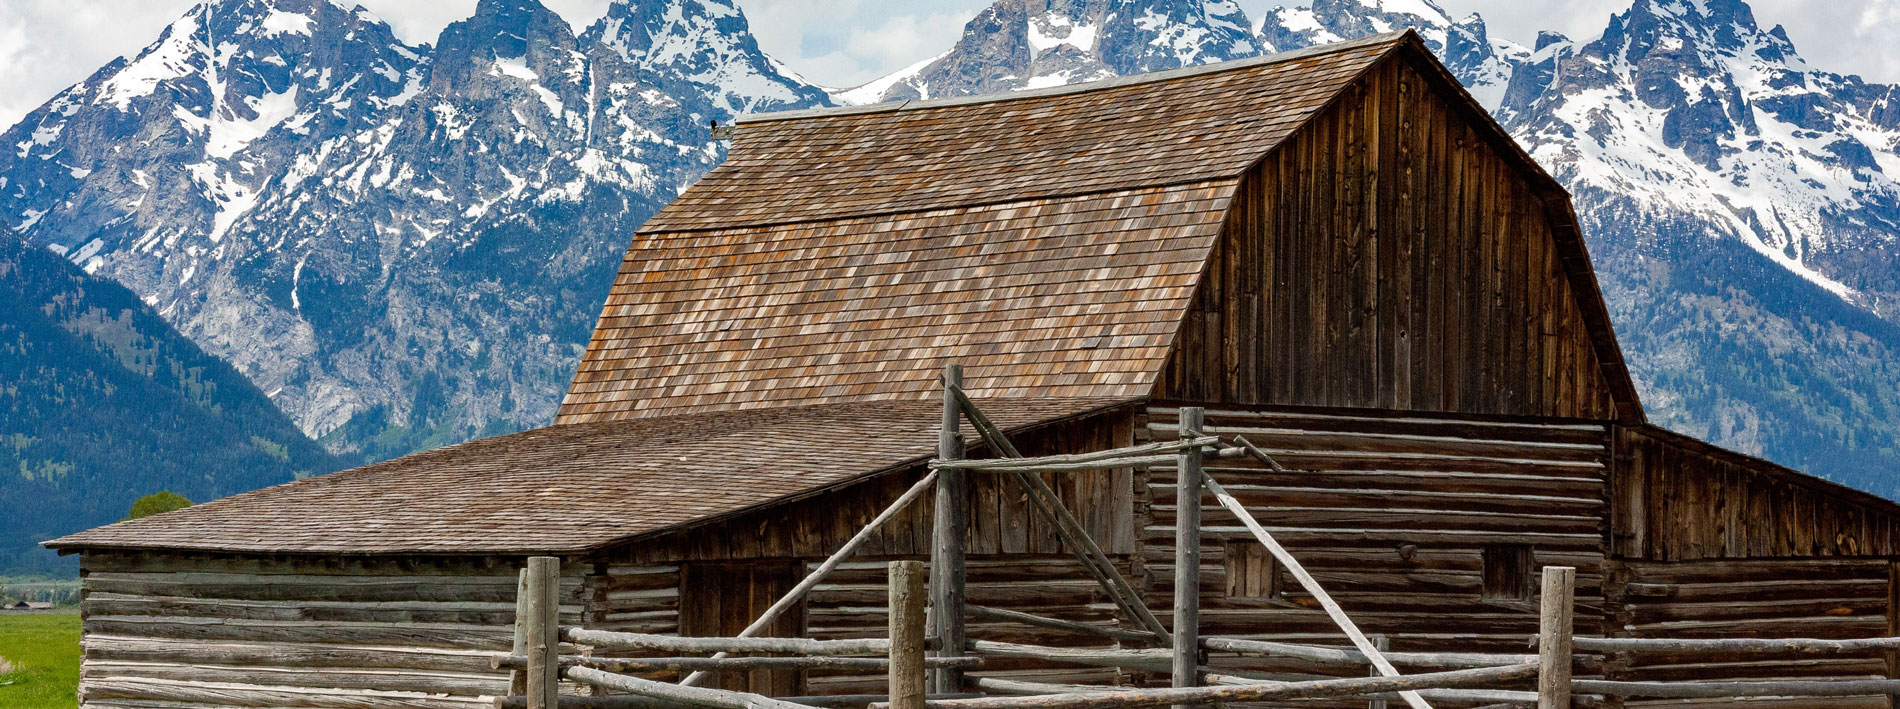 barn with Wyoming mountain range in the background